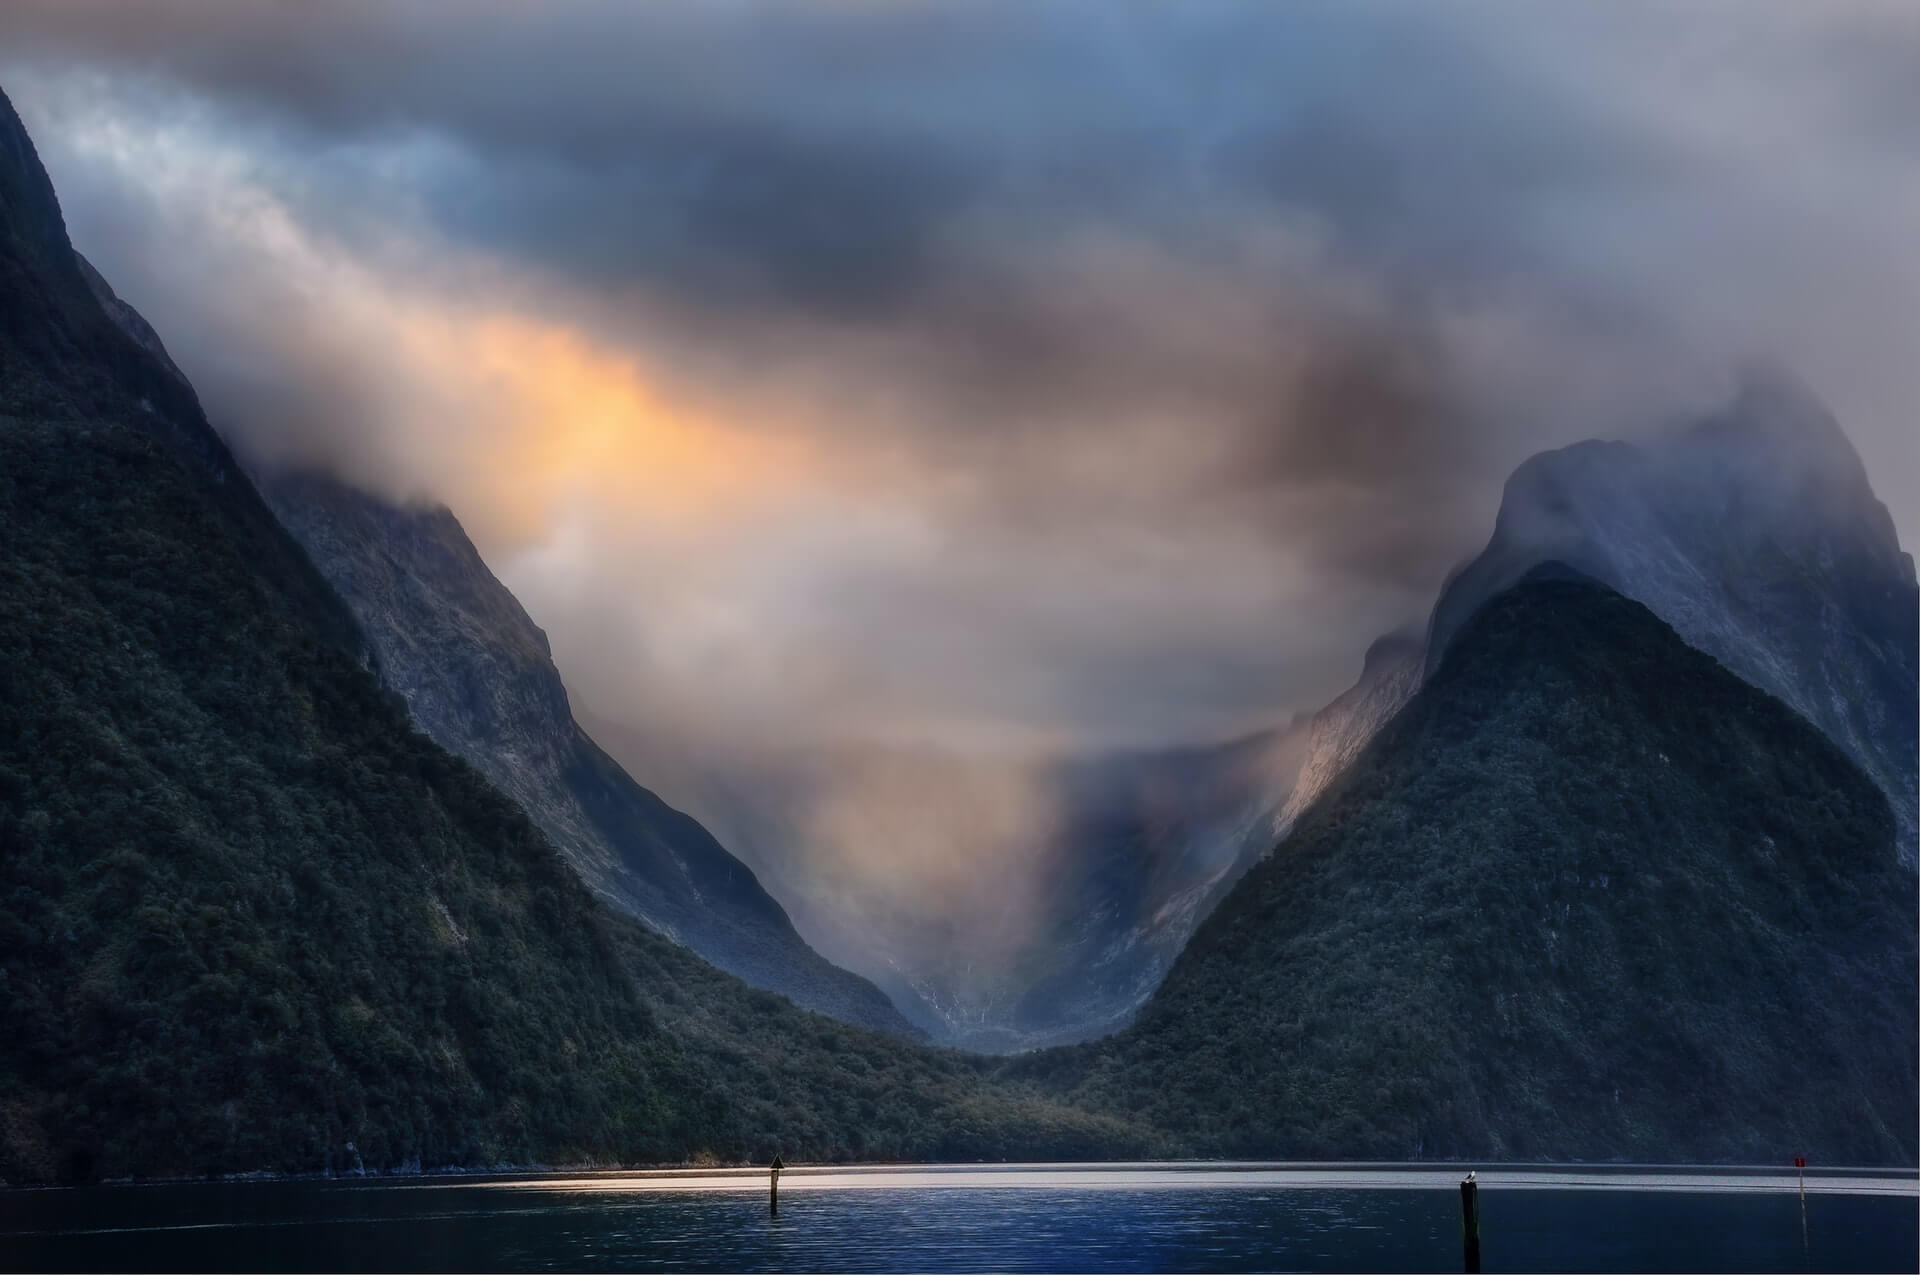 Kayaking in Milford Sound on a moody and overcast day